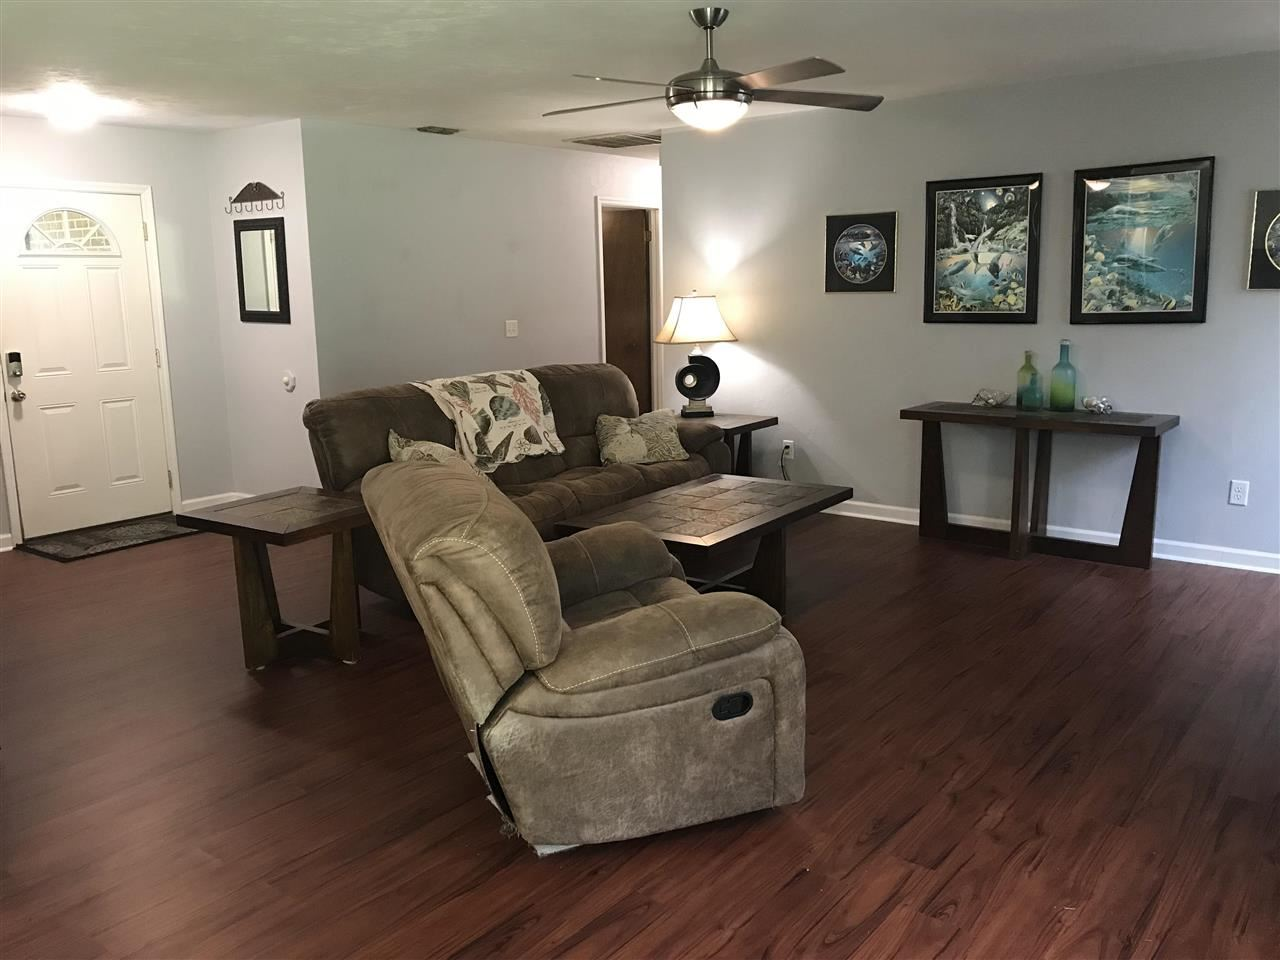 Photo of 3710 Caracus Ct Court, TALLAHASSEE, FL 32333 (MLS # 335211)